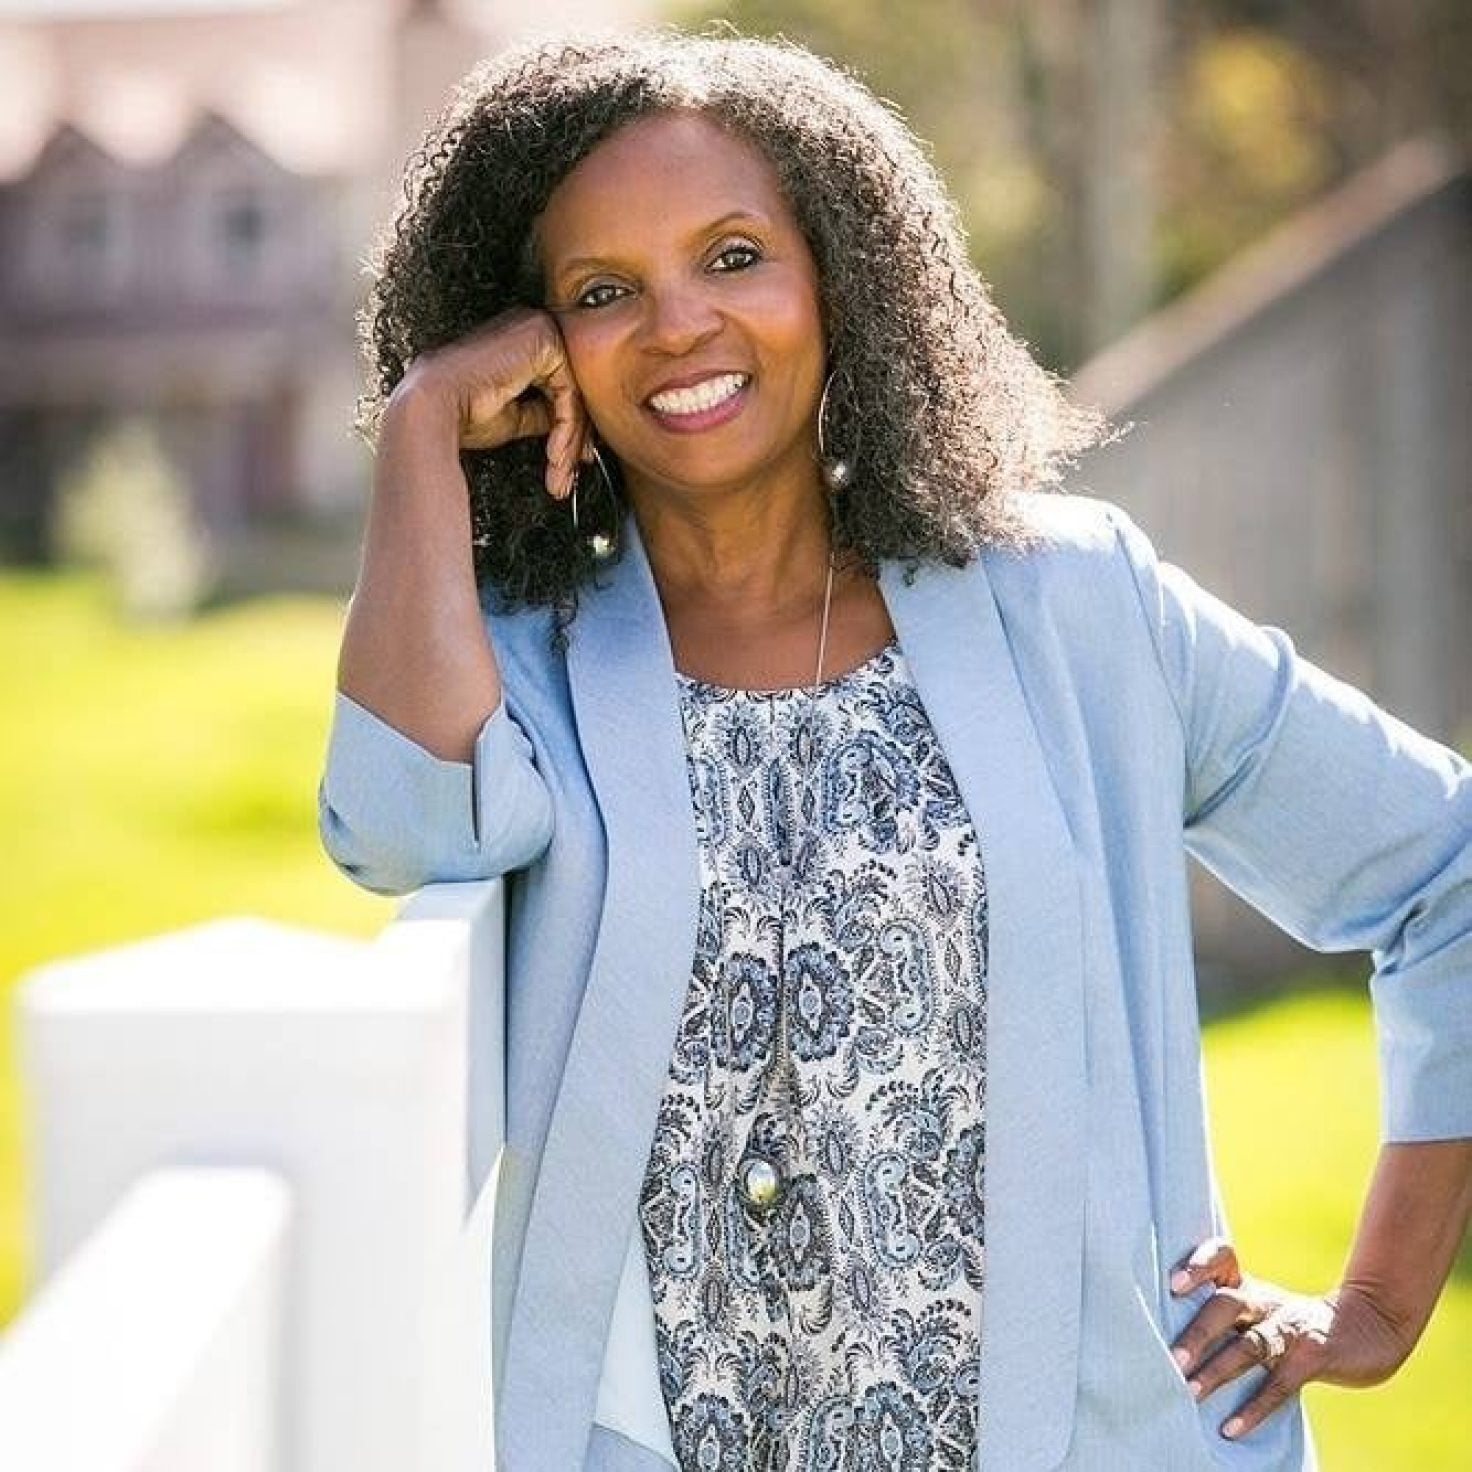 In Her We Trust: Dr. Rosemarie Allen Is An Education Expert Who Wants To End Classroom Bias